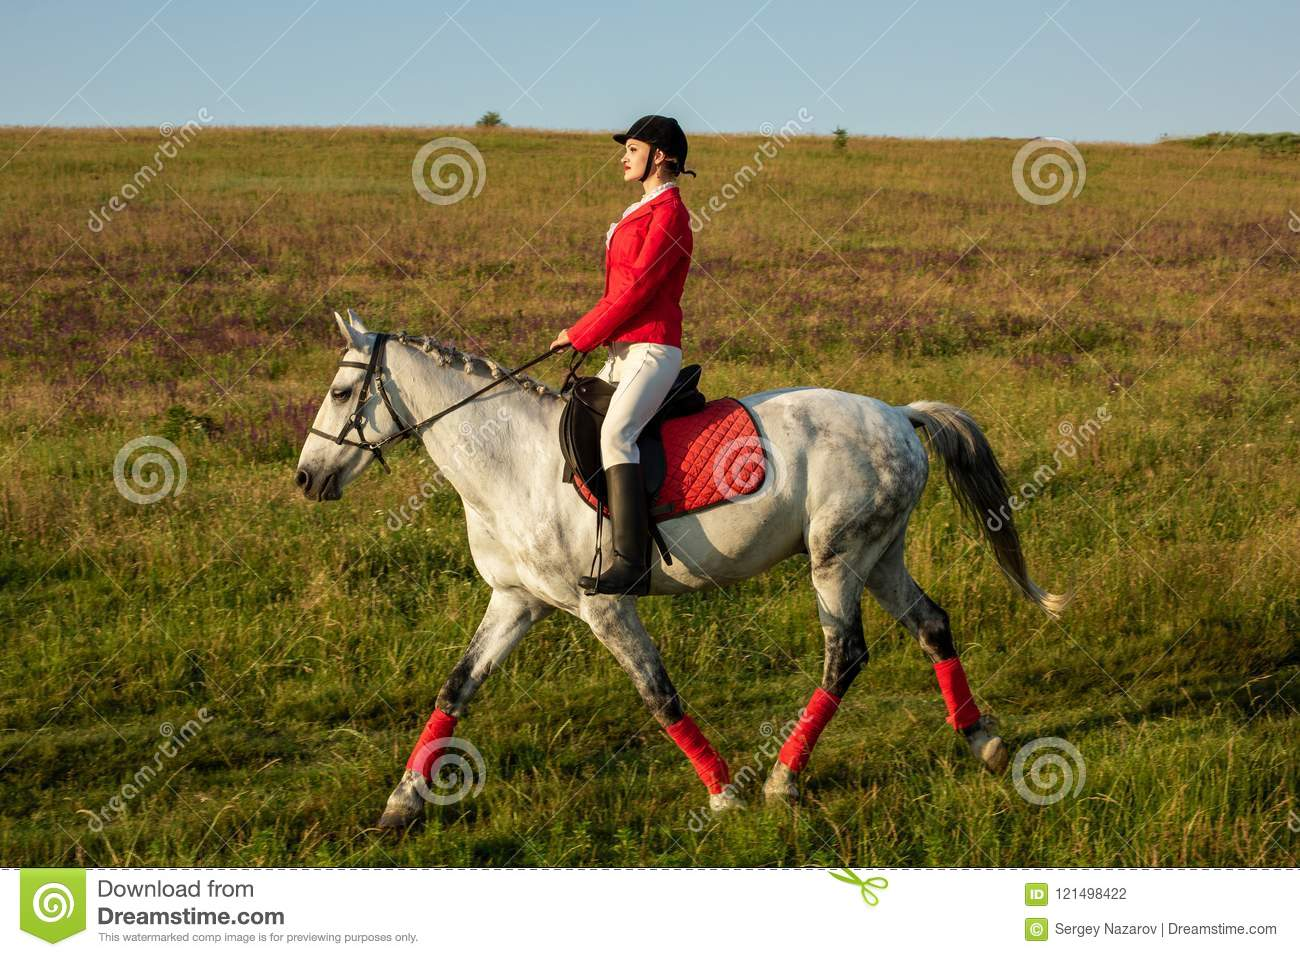 The Horsewoman On A Red Horse Horse Riding Horse Racing Rider On A Horse Stock Photo Image Of Mammal Bridle 121498422